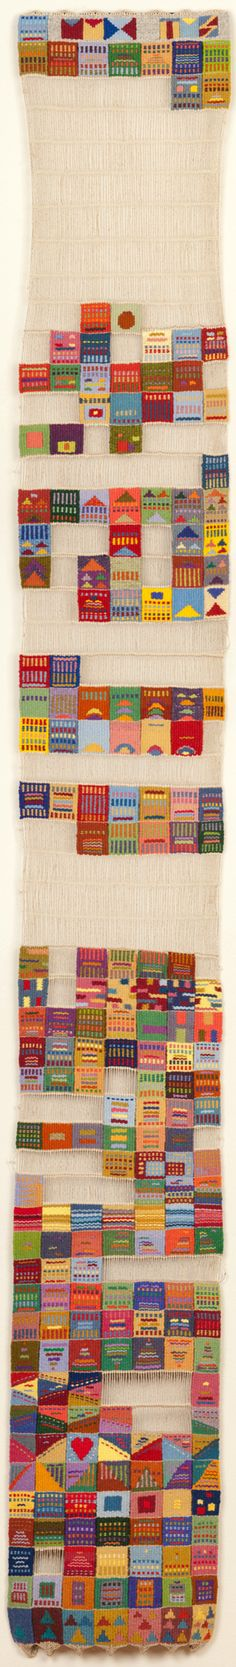 Tommye Scanlin | Tapestry of Days. 2010; This tapestry is handwoven with each area or section woven on each day as the year progressed. Indicators for the date were woven in some way | FiberArtNow.net magazine.